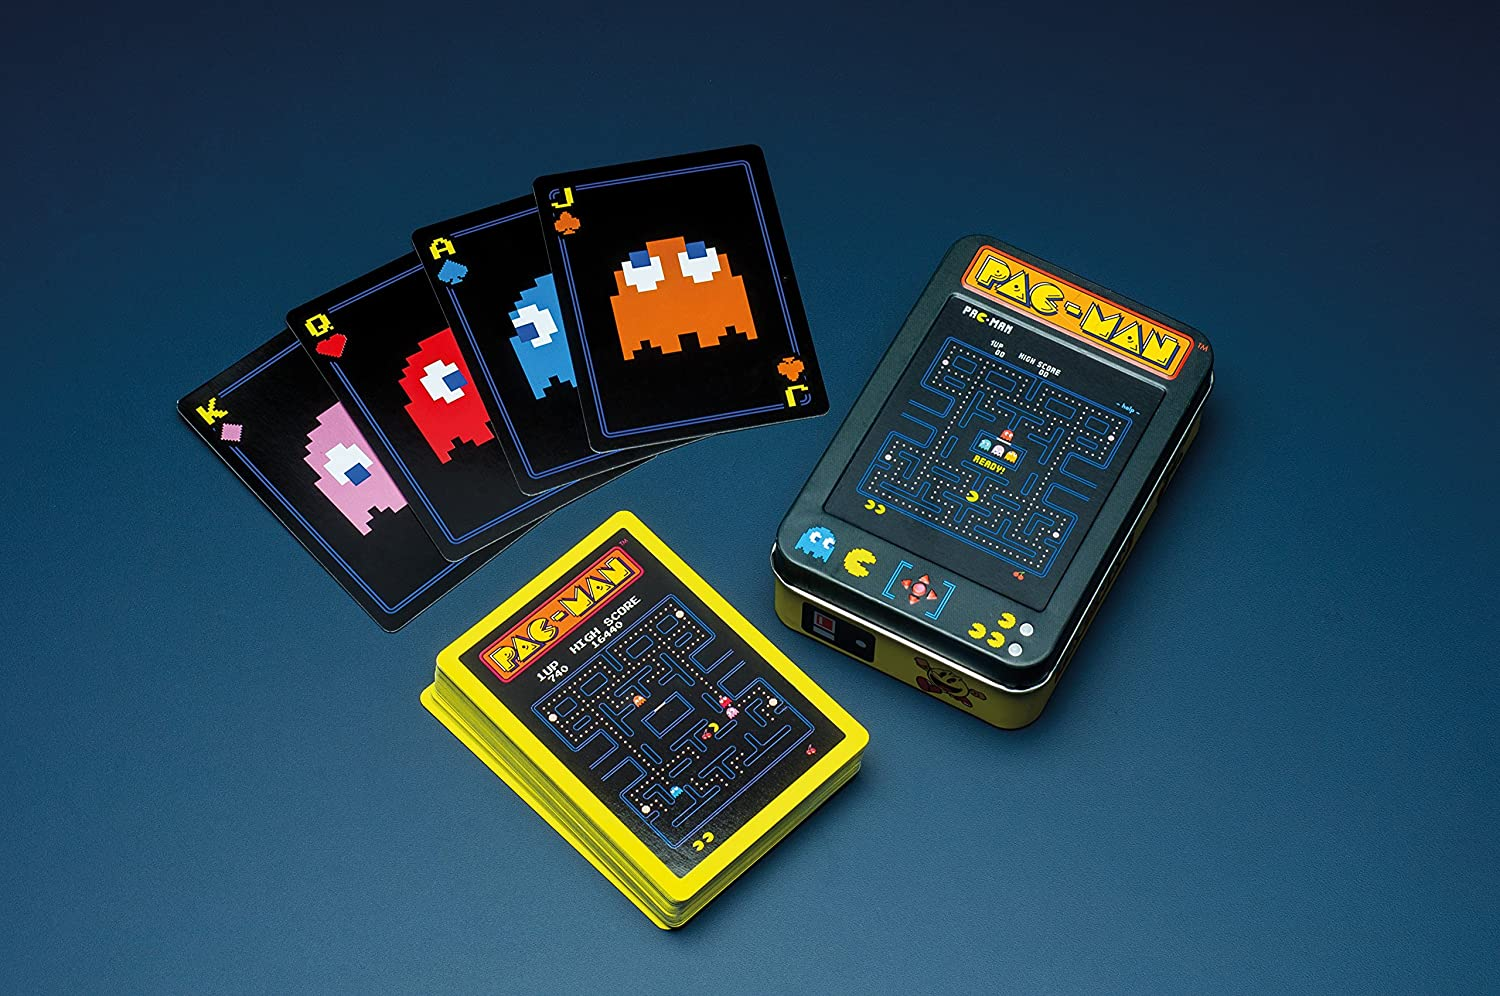 Amazon.com: Pac Man juego de cartas: Toys & Games